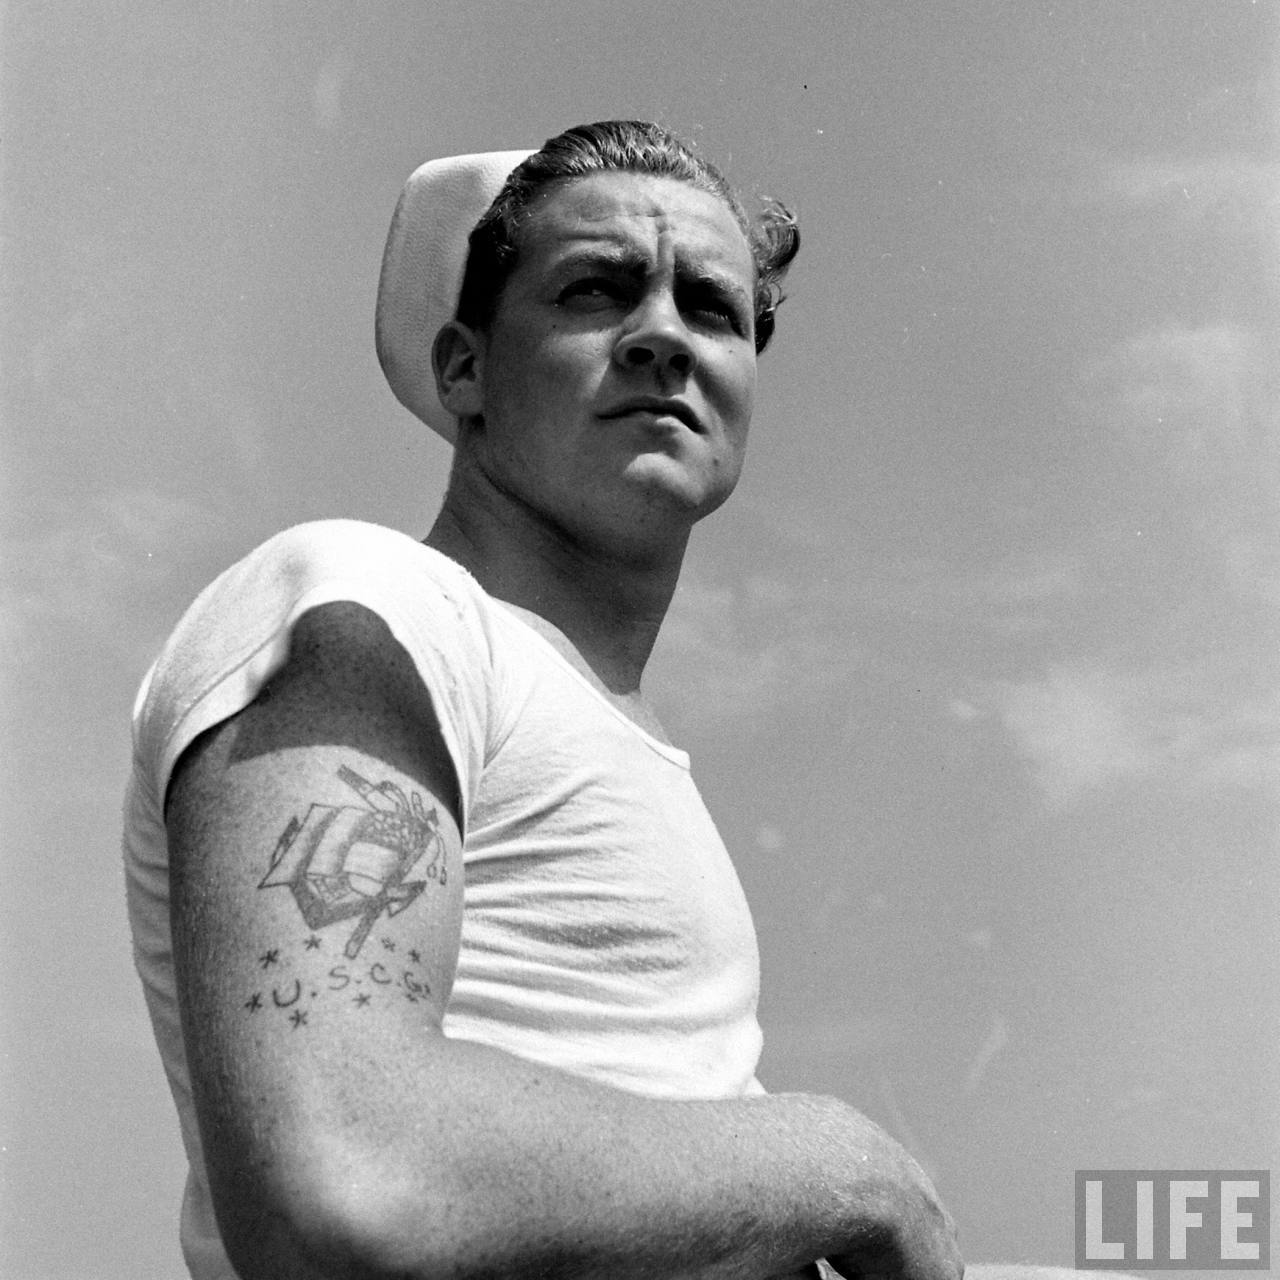 An iconic photo of a US Sailor in a white T-shirt. Photo credit and copyright LIFE magazine